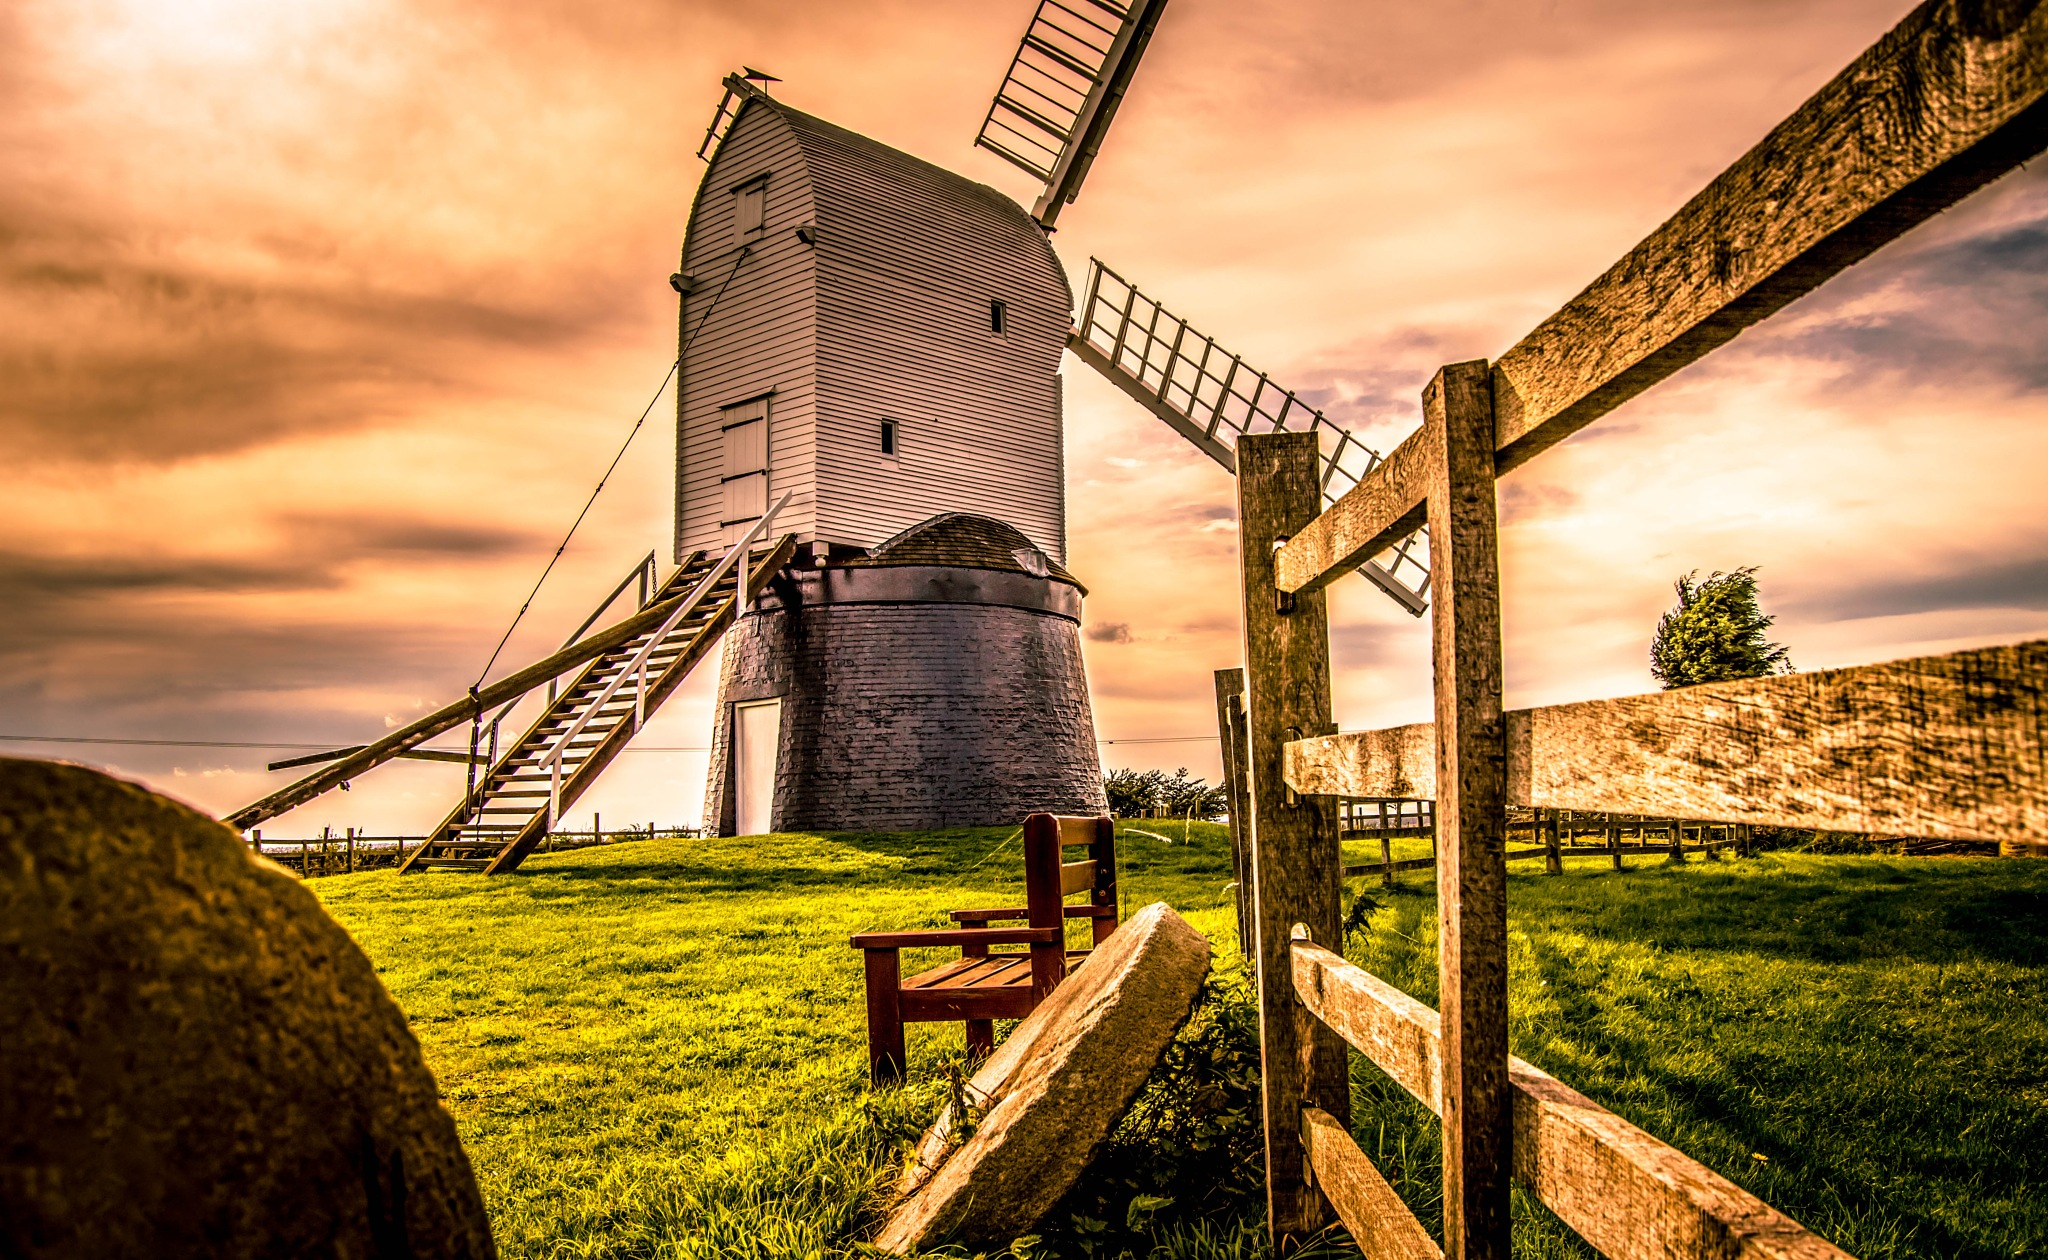 Another shot of Wrawby Windmill in Lincolnshire by robin.howe.56